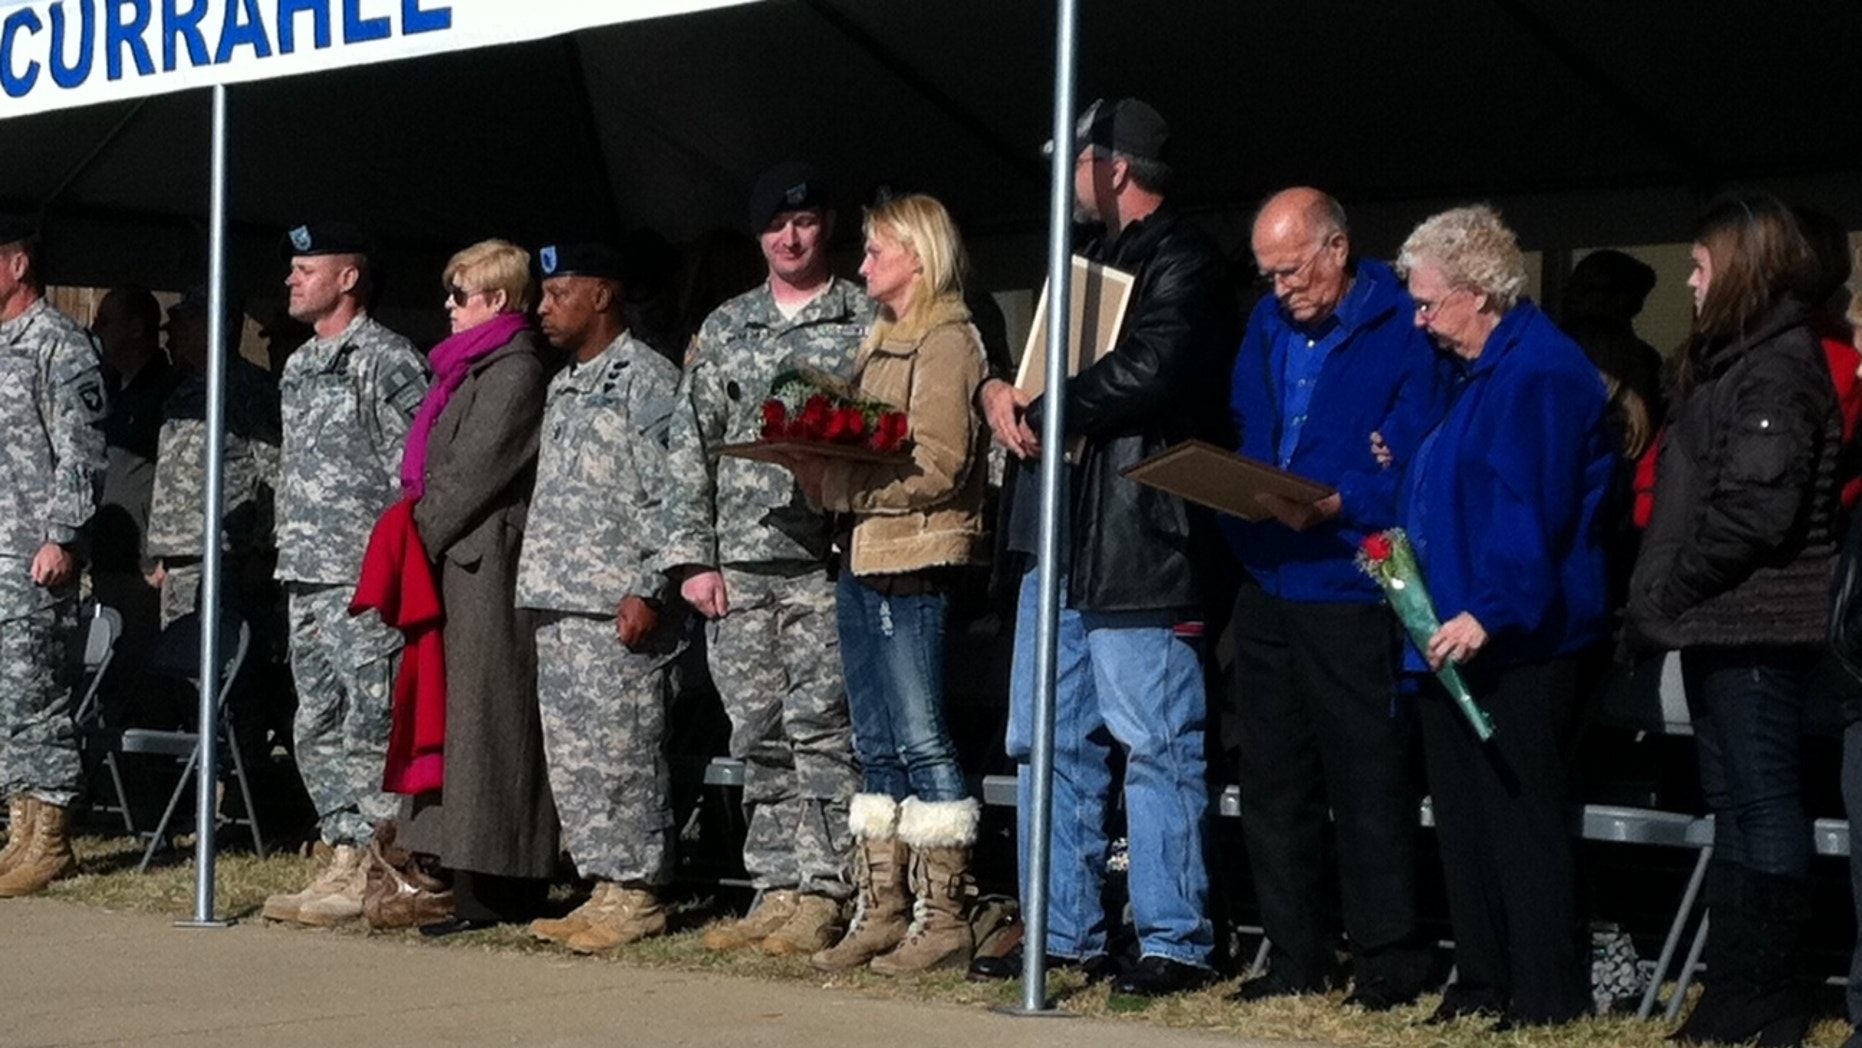 Nov. 10, 2011: Family of Sergeant First Class Barry Jarvis, killed in combat, recieves Silver Star at Fort Campbell, Ky.